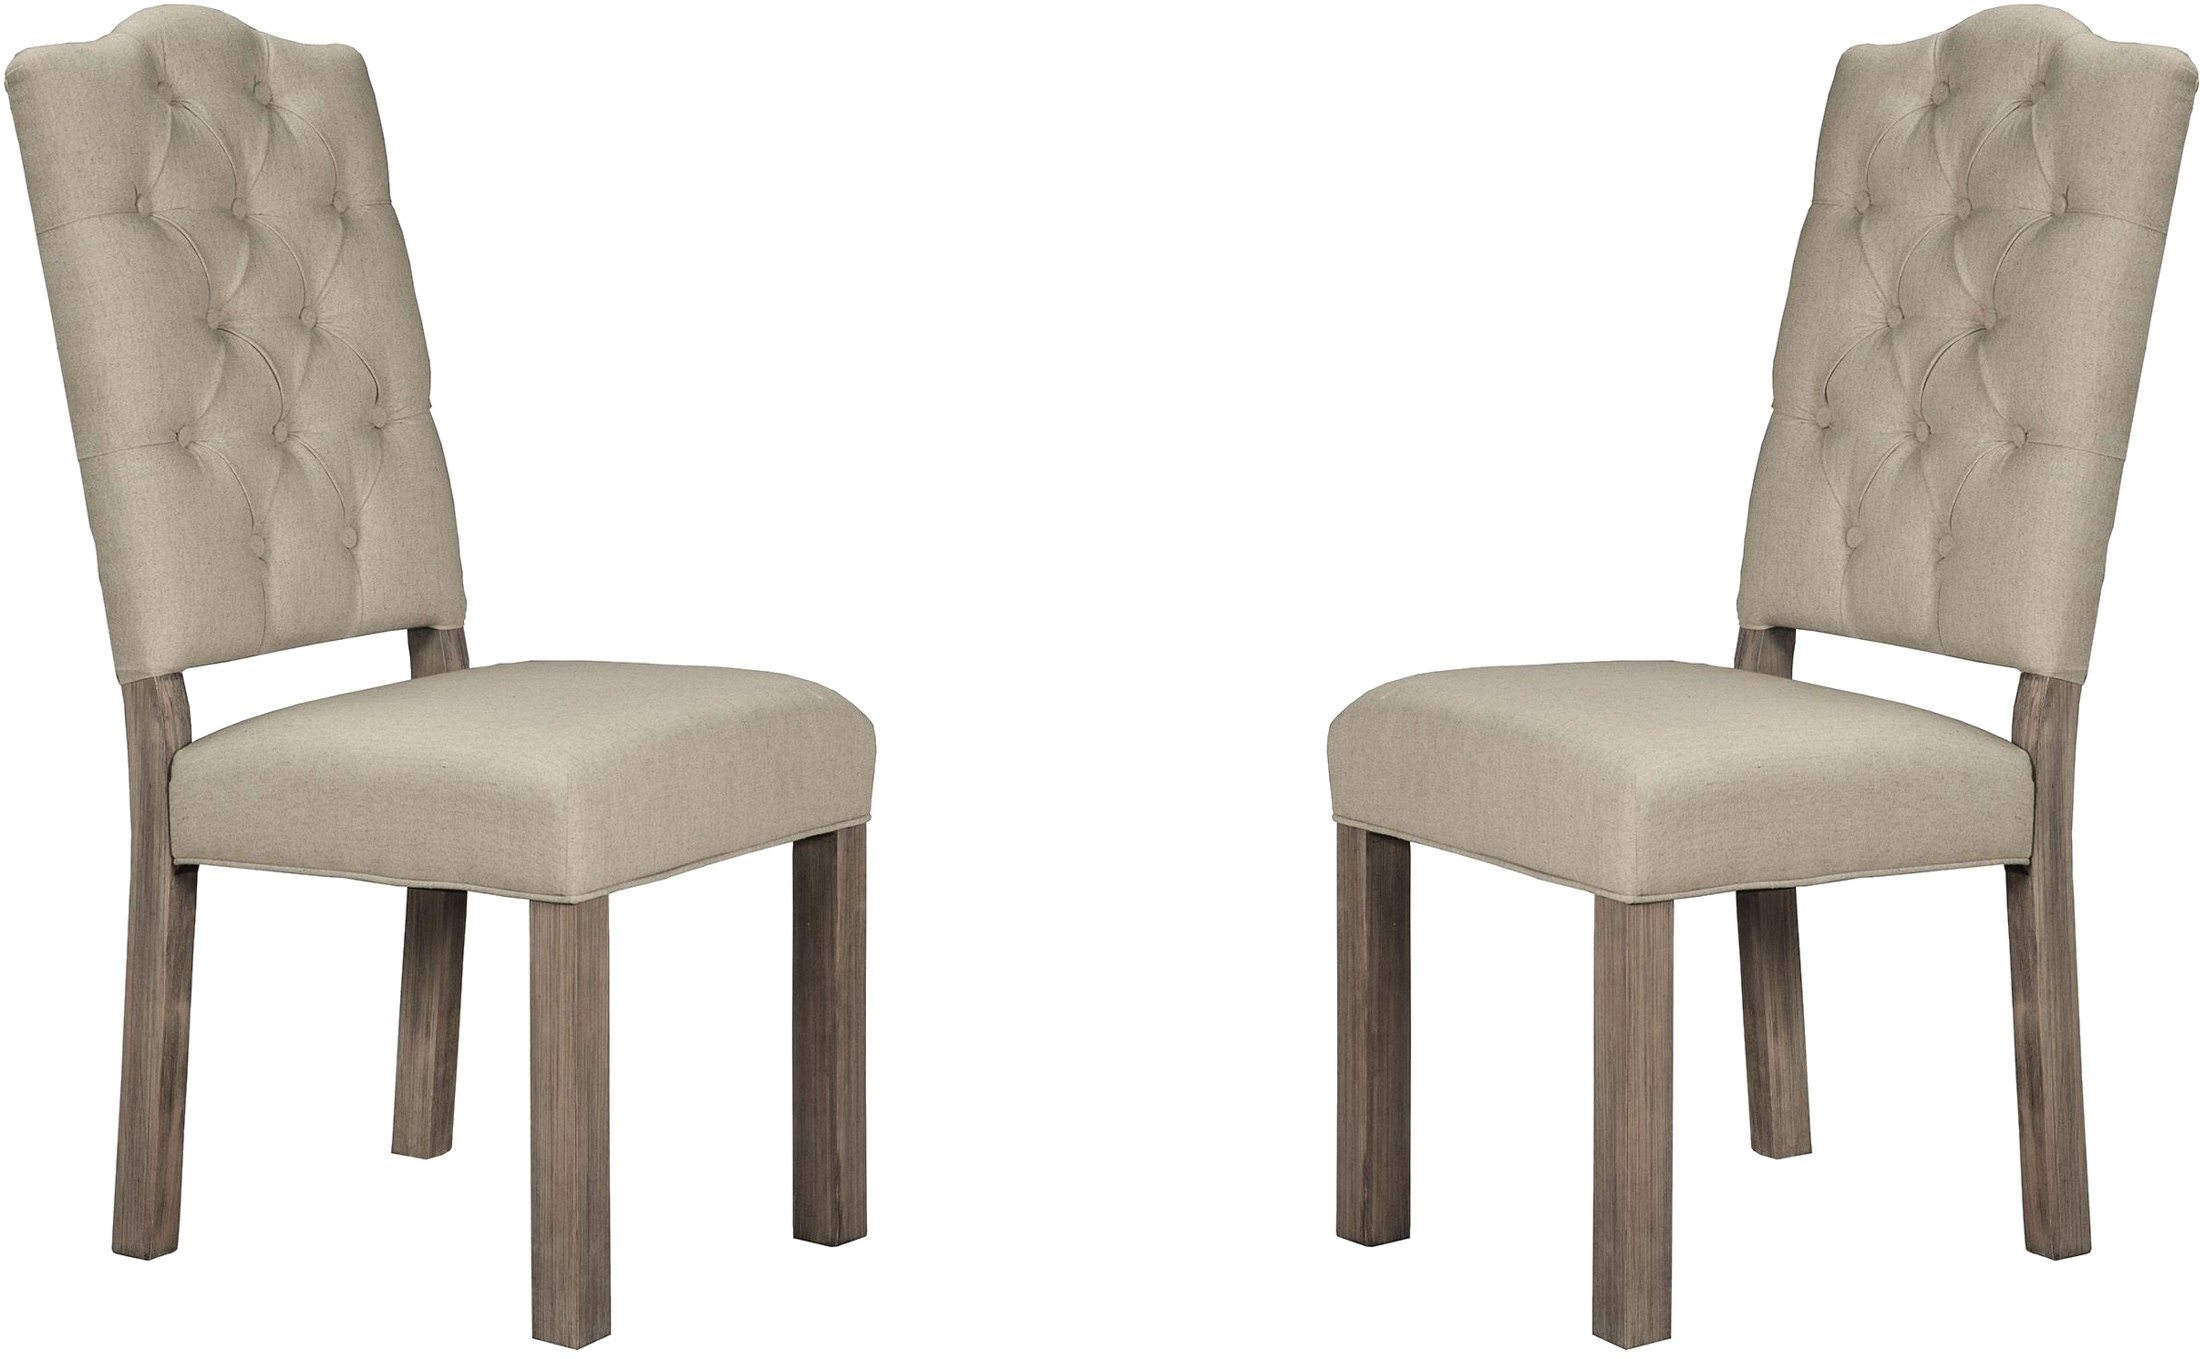 Grey Upholstered Chair Fiji Grey Upholstered Side Chair Set Of 2 From Alpine